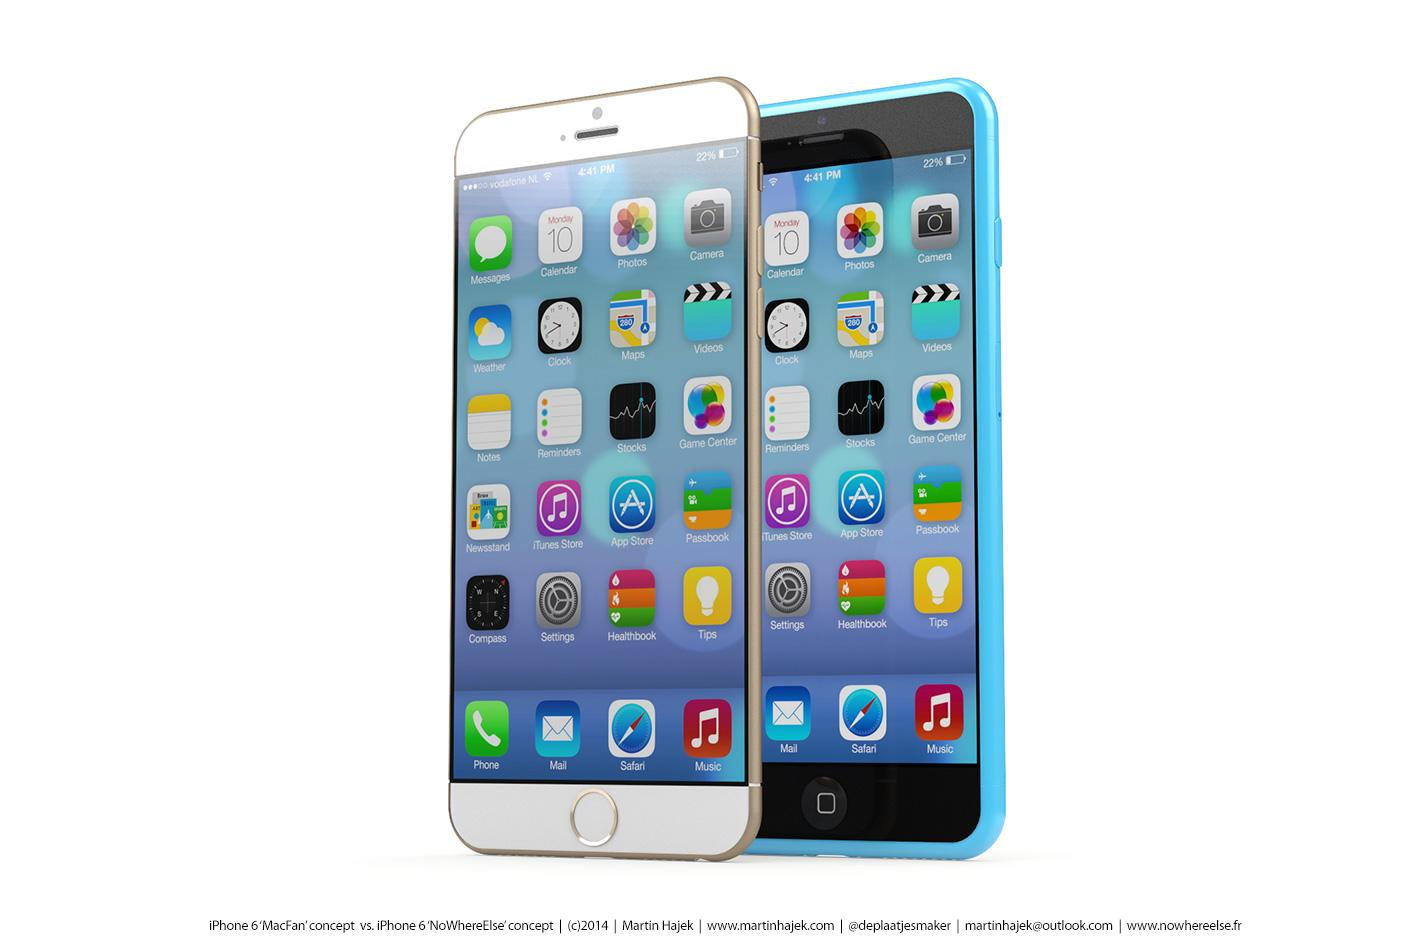 Iphone 5 deals on 3 mobile